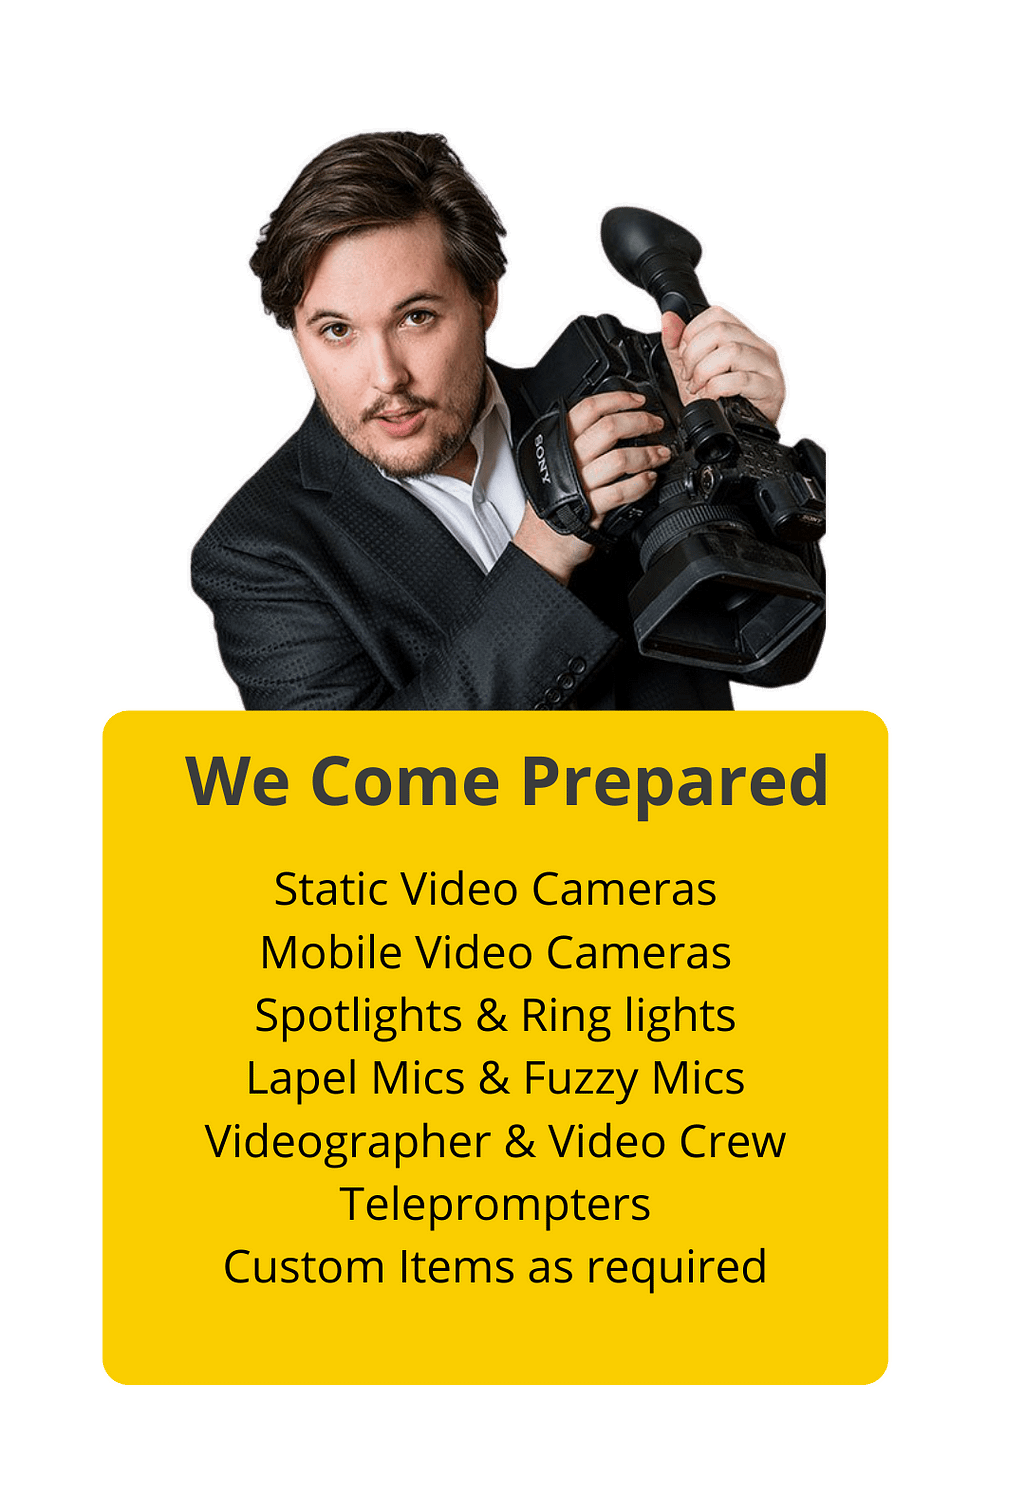 Video services 3